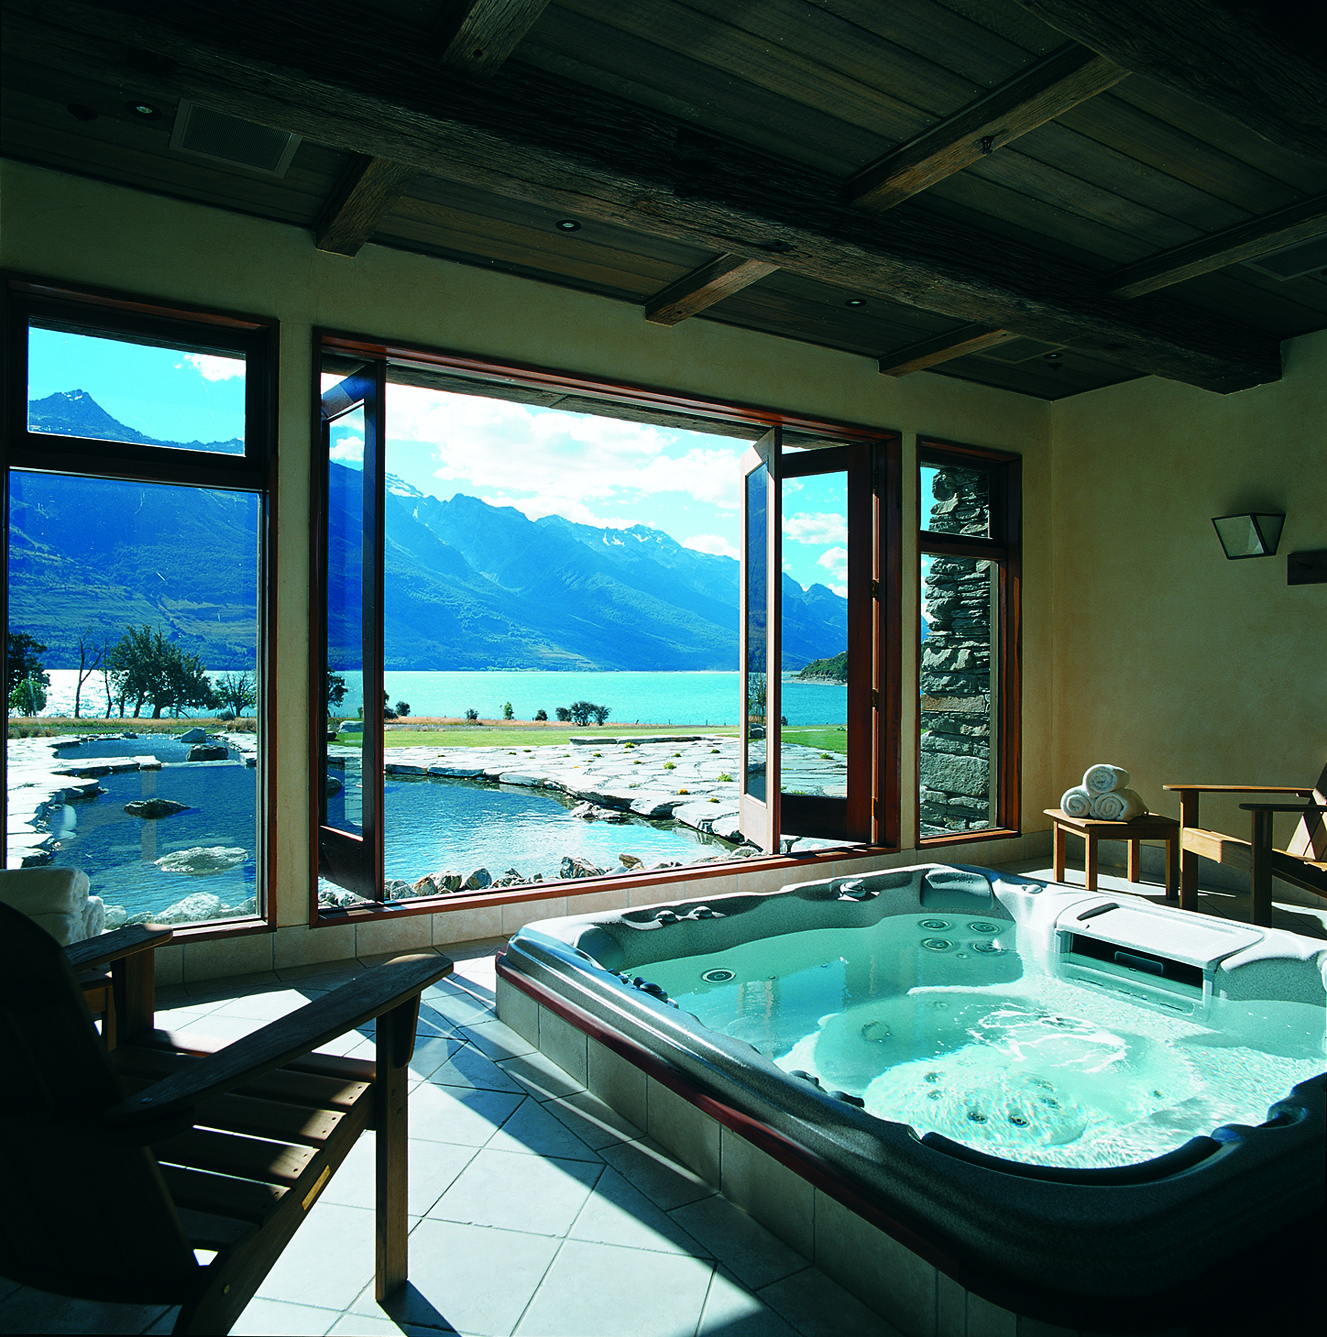 anything heli with Wednesdays Wish Trip Blanket Bay Lodge Glenorchy New Zealand on Showthread likewise Showthread further Showthread additionally Showthread moreover Wednesdays Wish Trip Blanket Bay Lodge Glenorchy New Zealand.